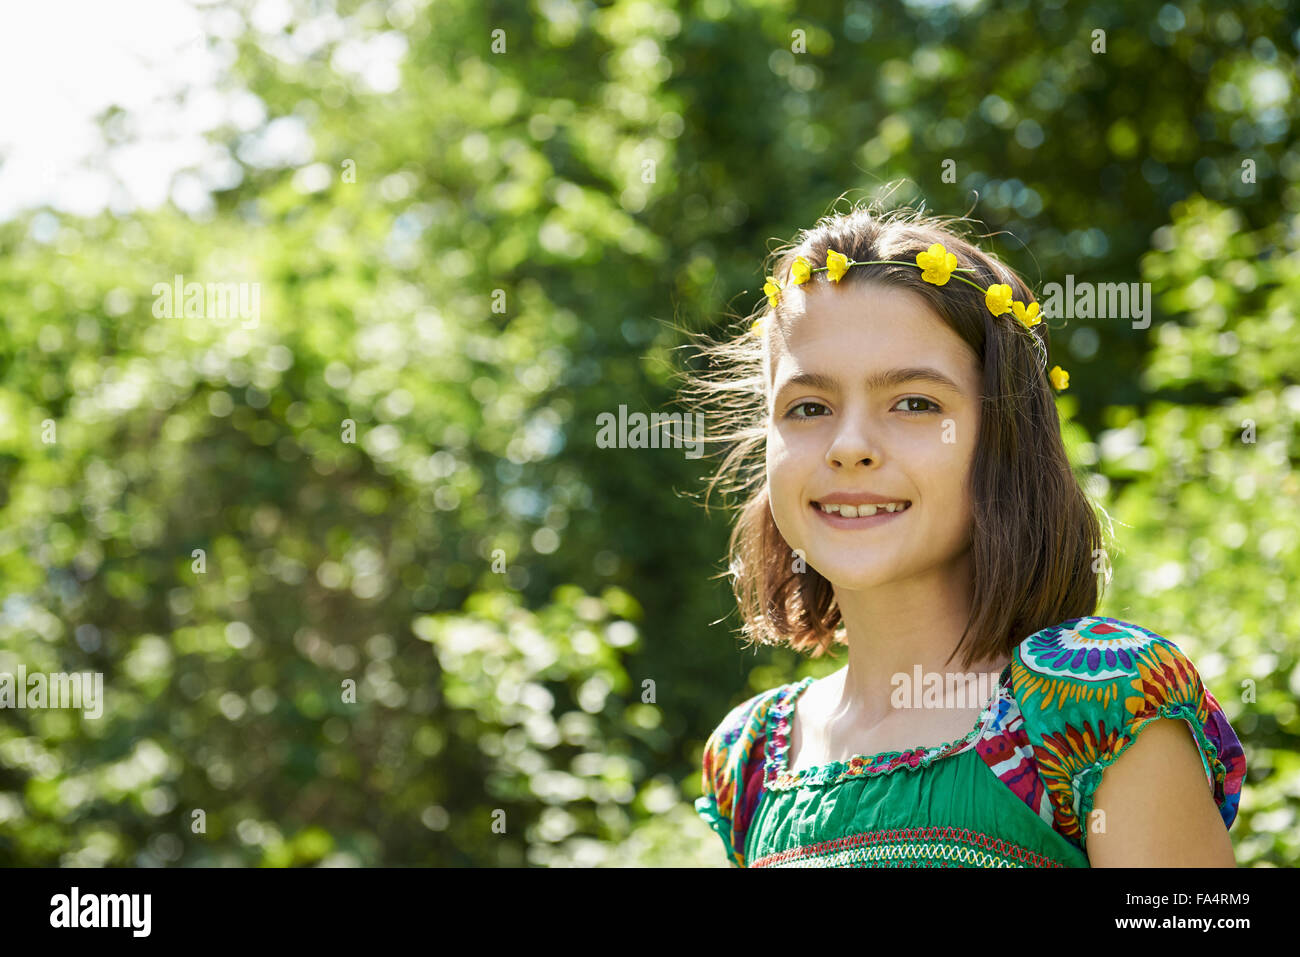 Portrait of a girl smiling in park, Munich, Bavaria, Germany - Stock Image